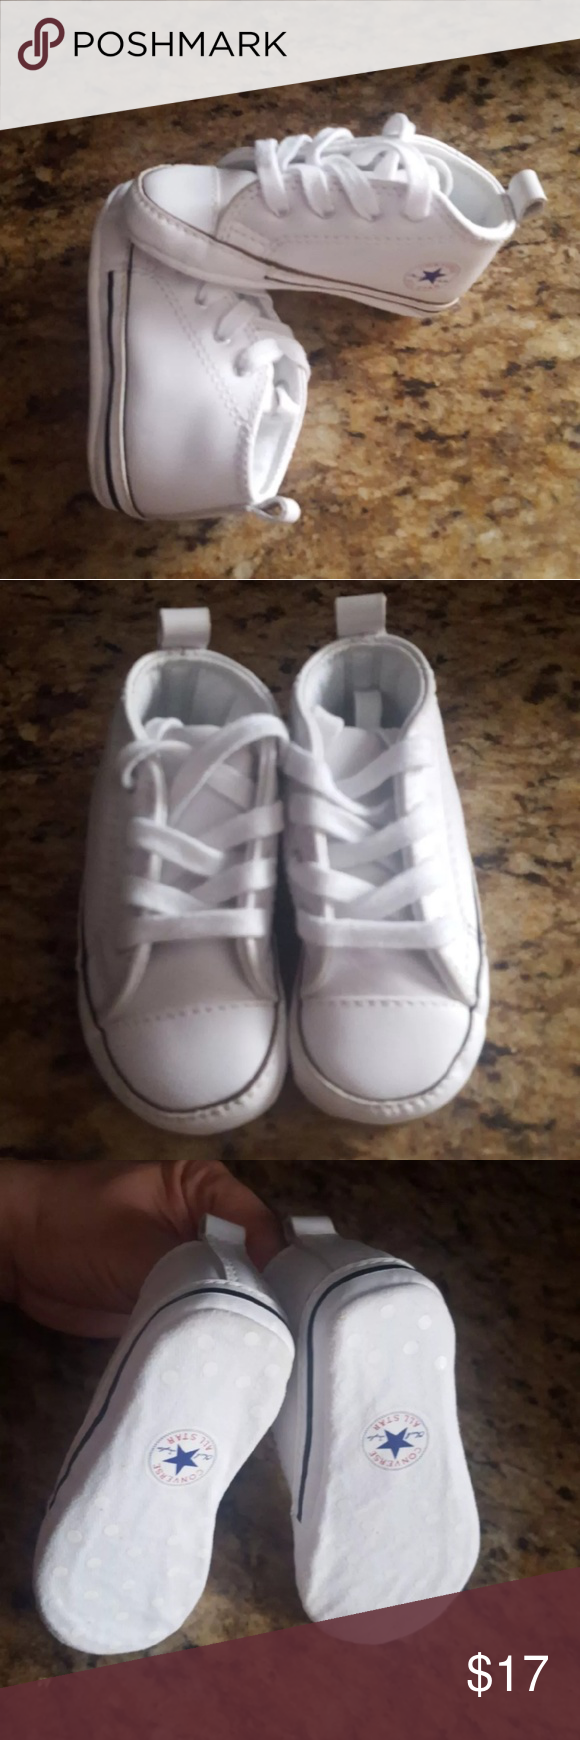 goede service beschikbaar brede selectie Baby converse size 4 Excellent used condition Converse Shoes ...